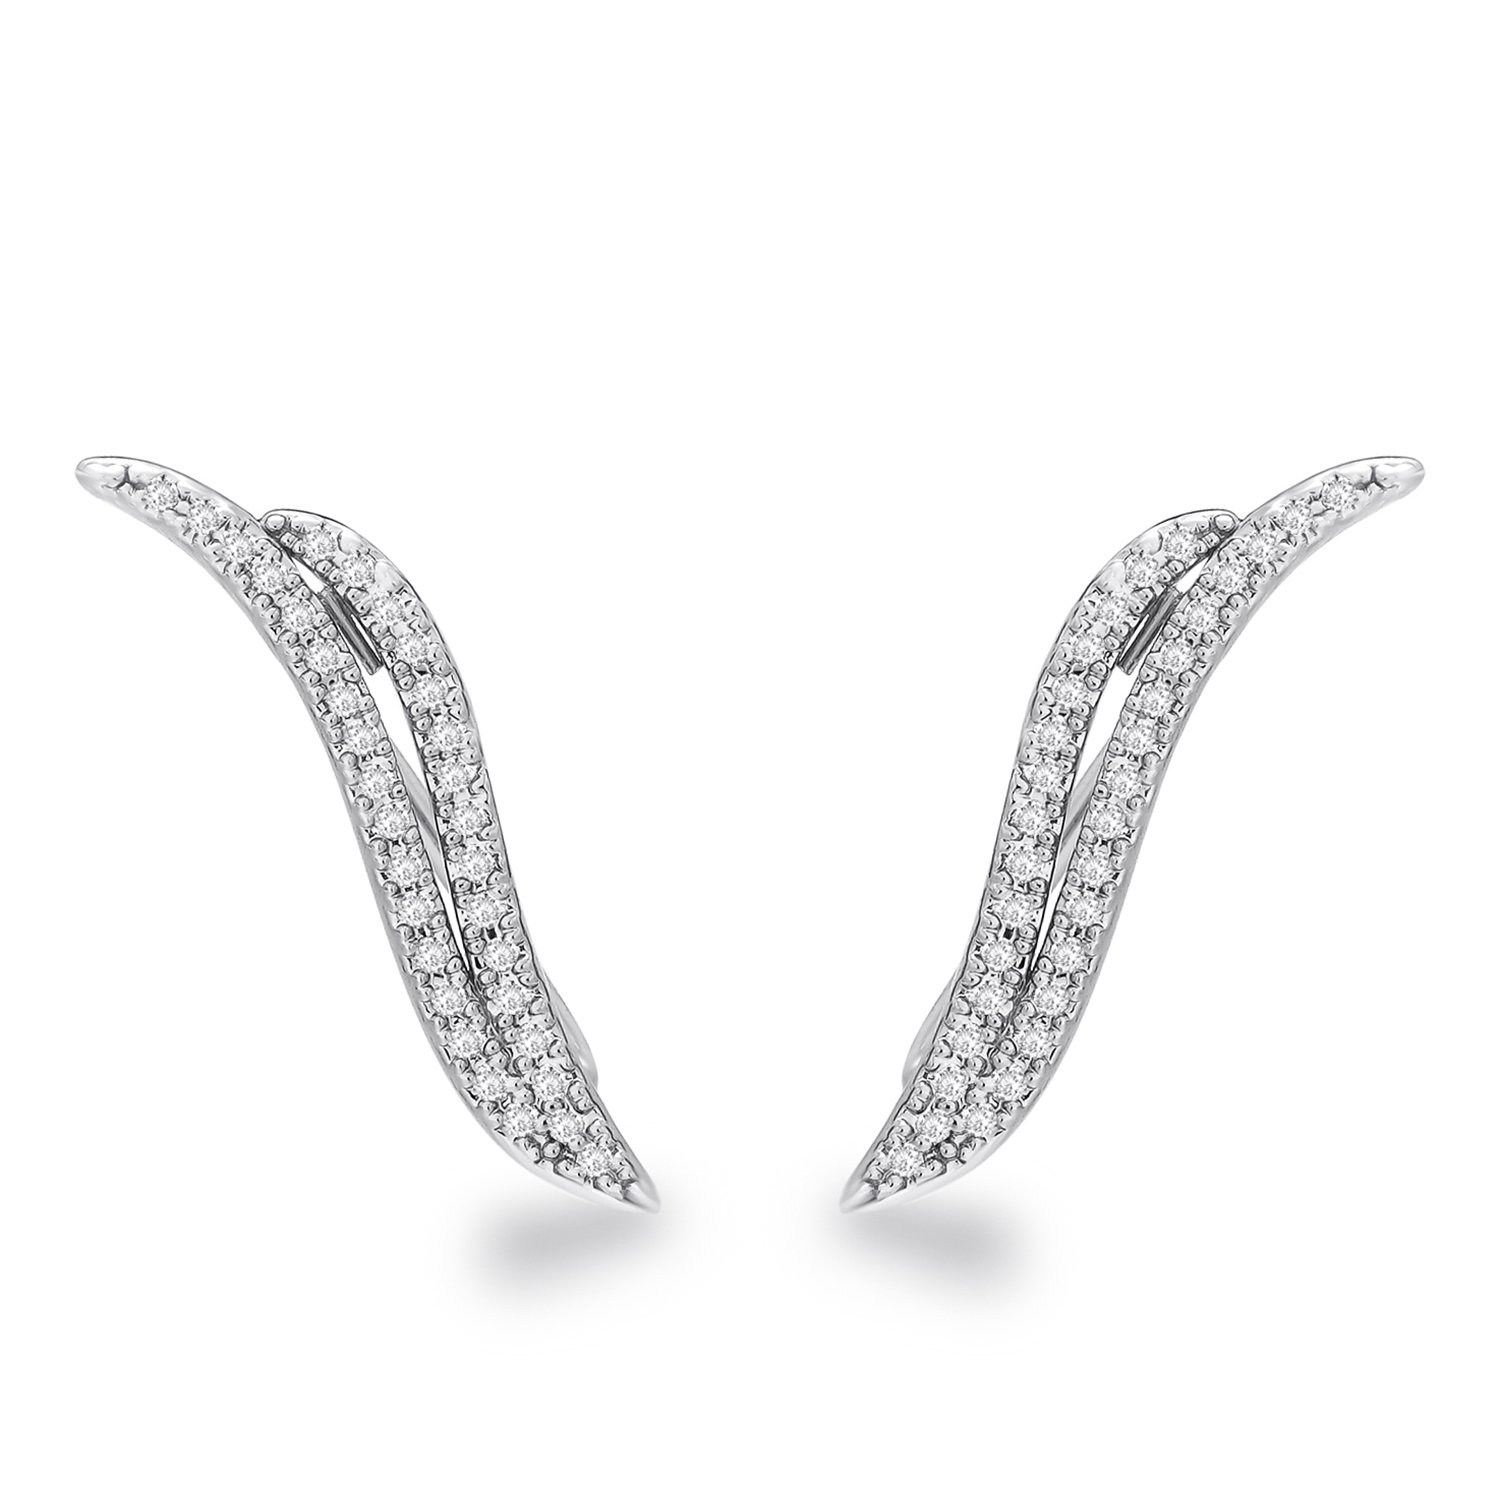 Angle Wing Ear Climbers Cuff Crawlers Stud Earrings White Gold Plated